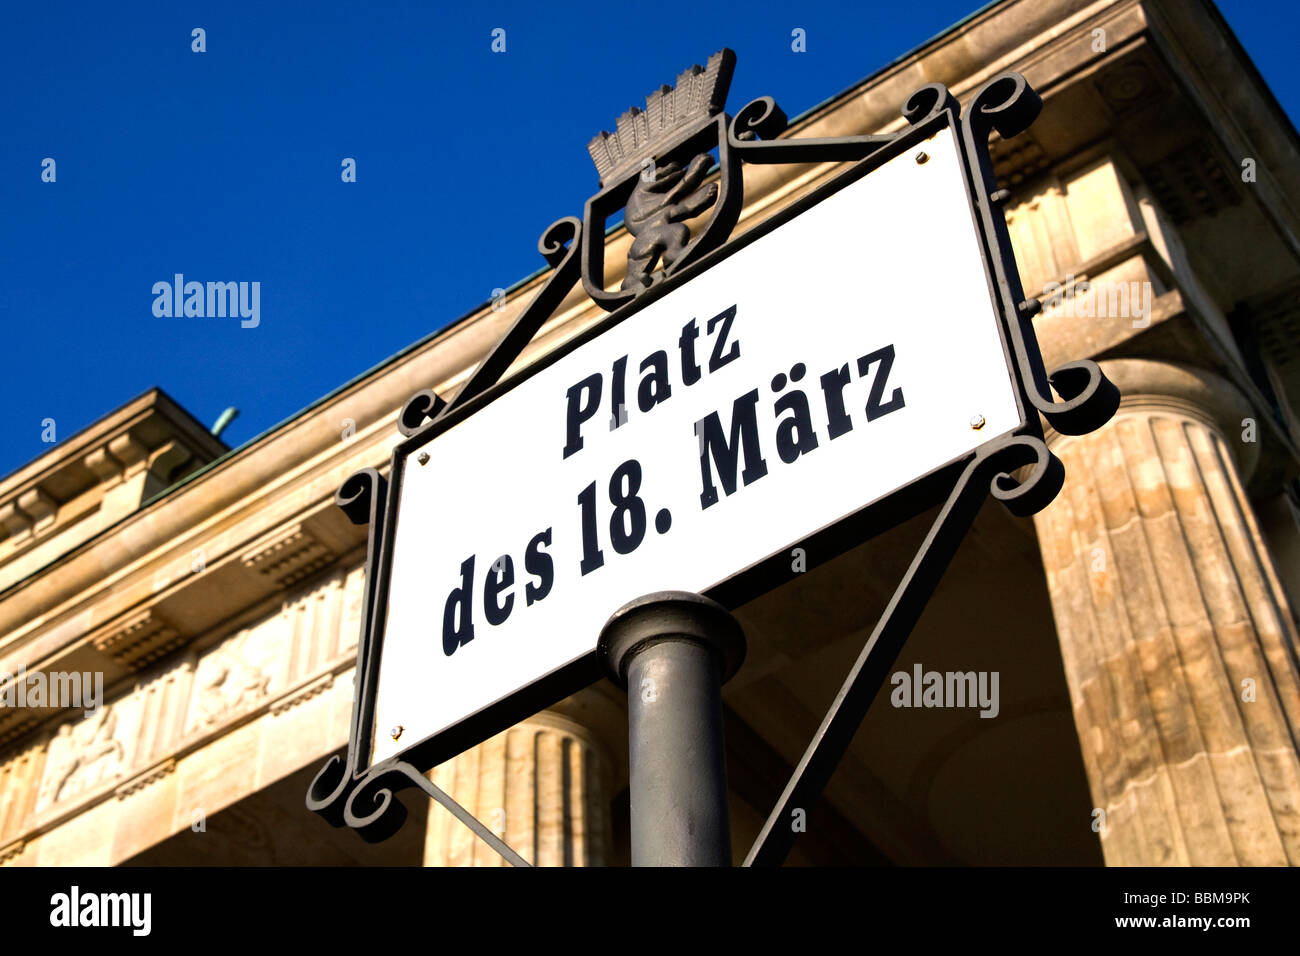 Sign 'Platz des 18. Maerz', 'Square of march 18th', in front of the Brandenburg Gate, Berlin, Germany, - Stock Image